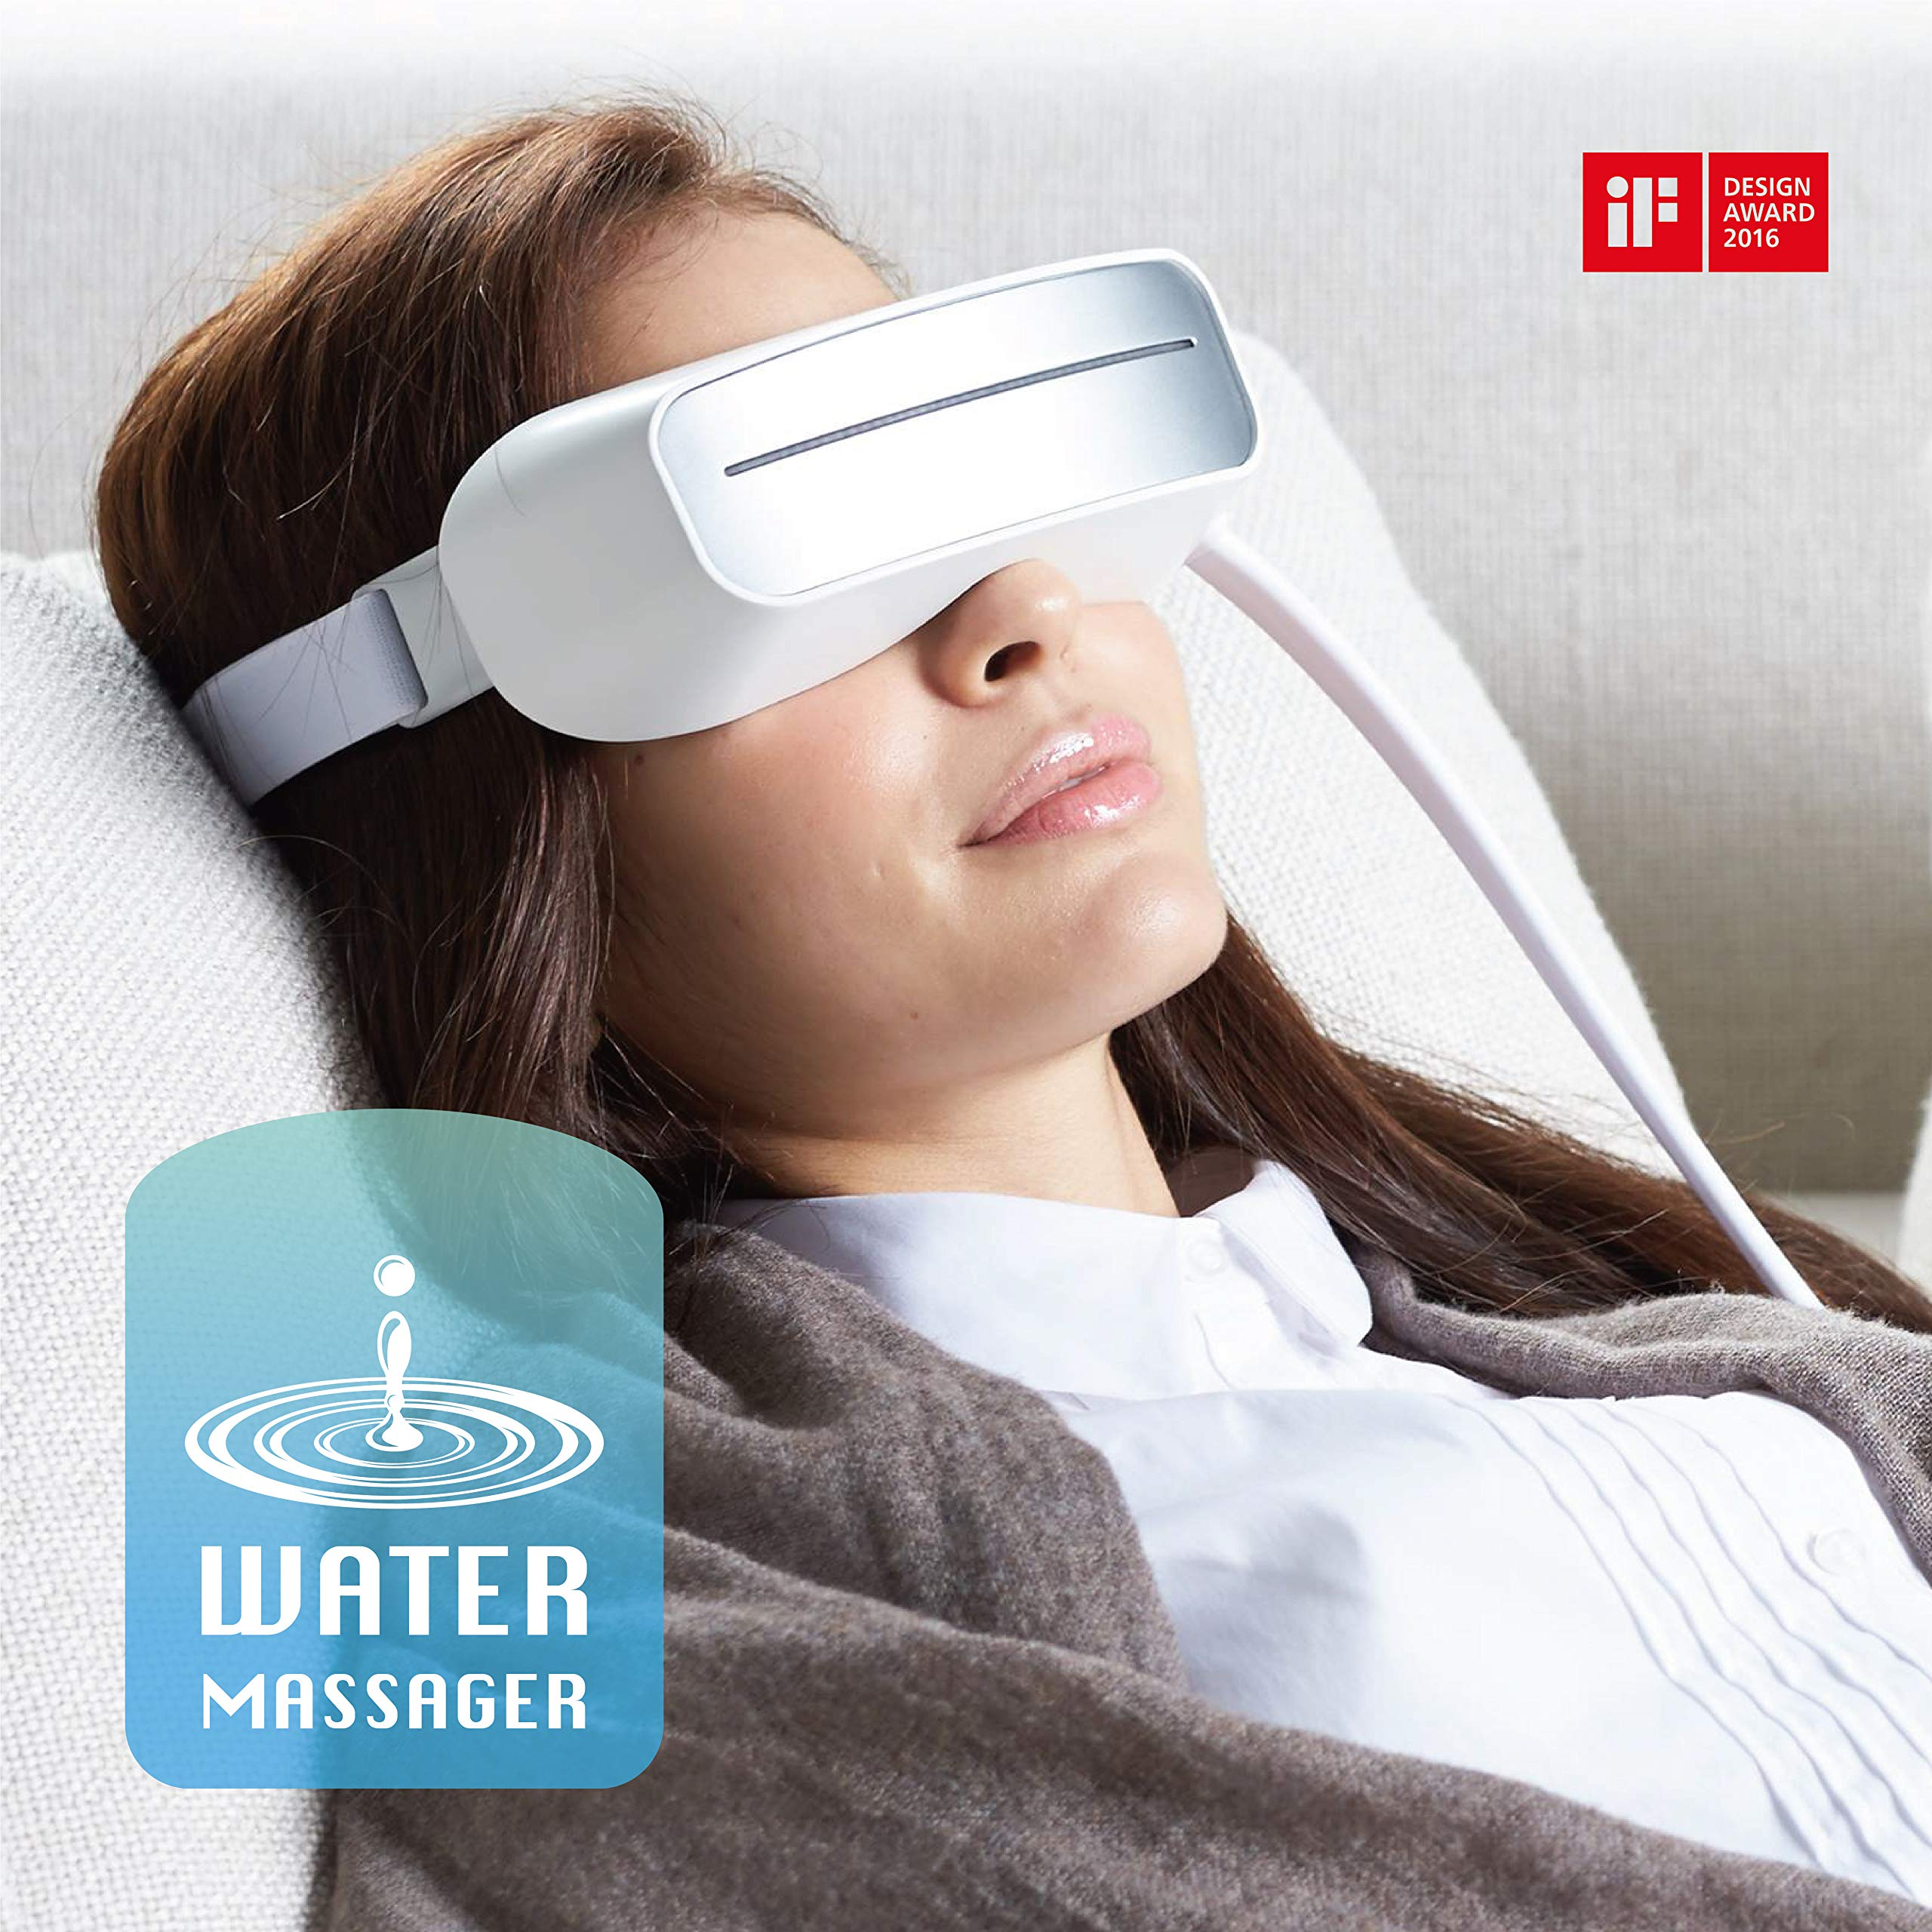 Aurai - Water Eye Massager, World's 1st Eye Care with Cooling and Heat, Best for Dry Eye, Tired Eye, Stress Relief, Dark Circles, Puffiness, and Wrinkle by Aurai (Image #1)